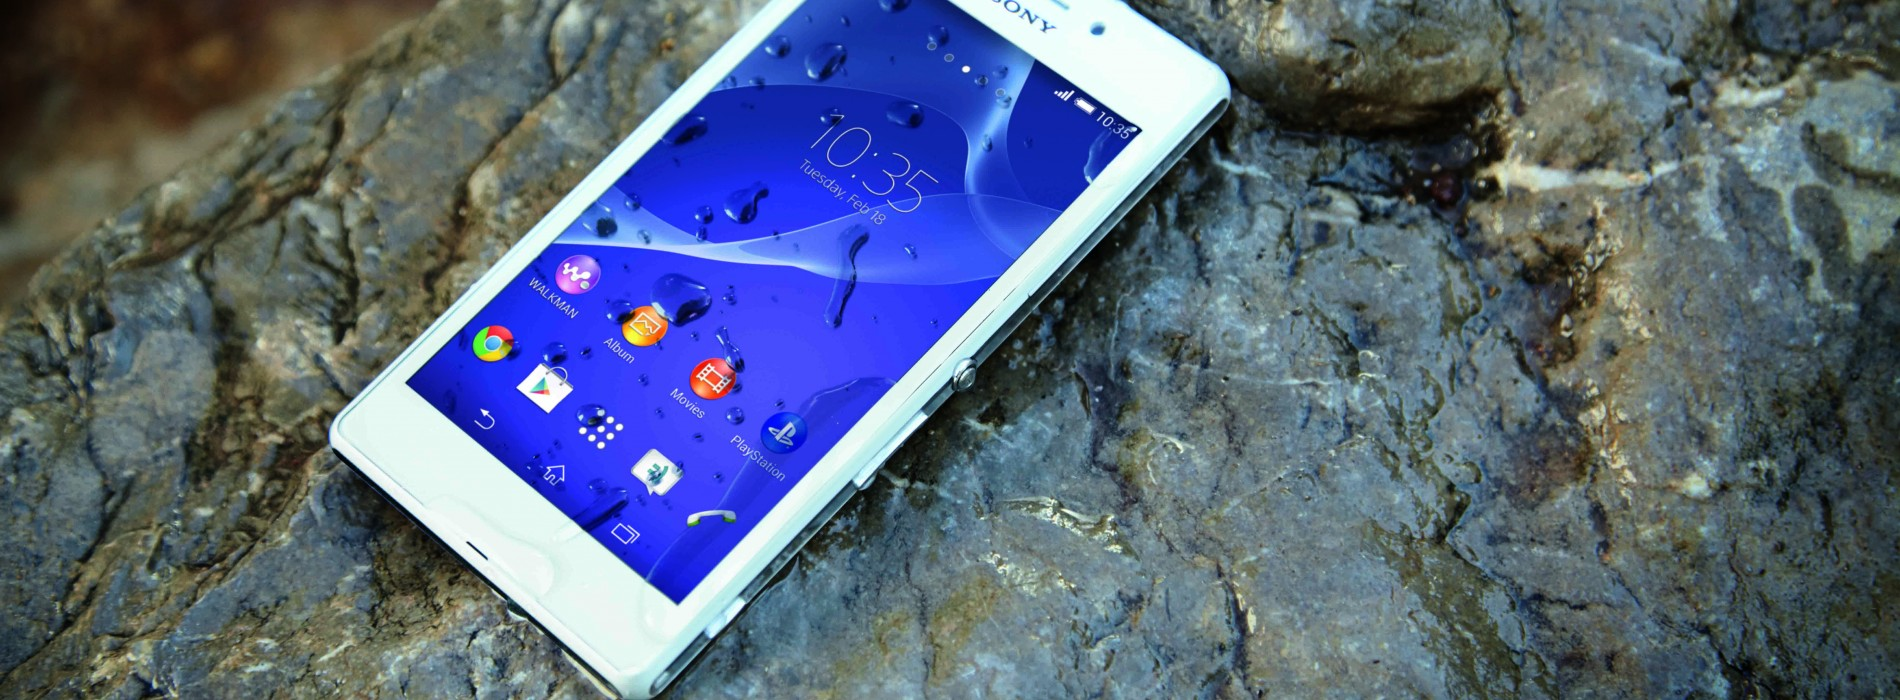 Sony announces Xperia M2 Aqua